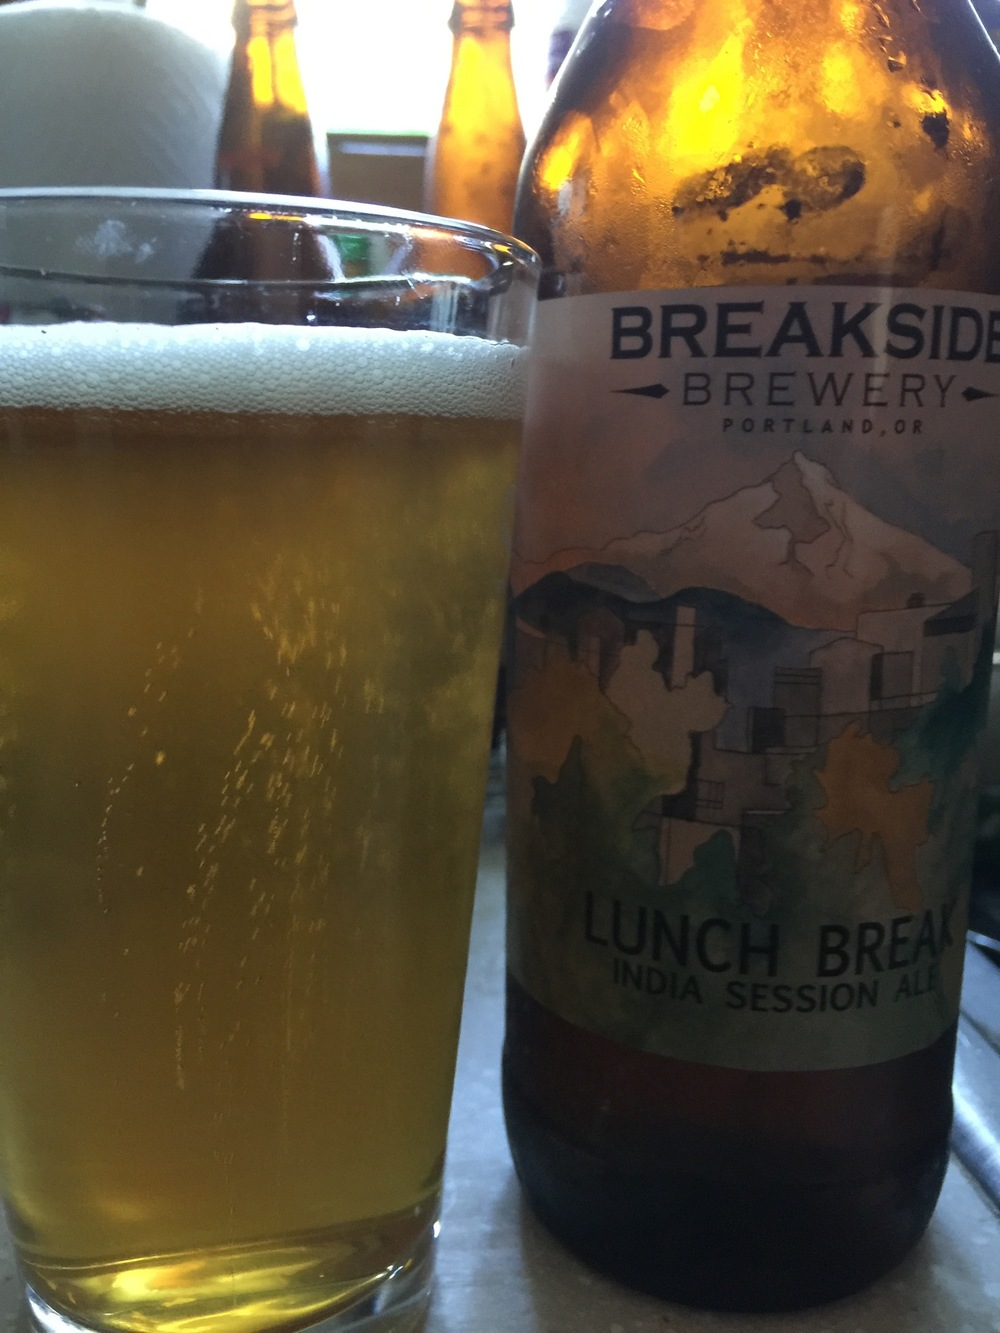 Breakside Brewery Lunch Break Session Ale